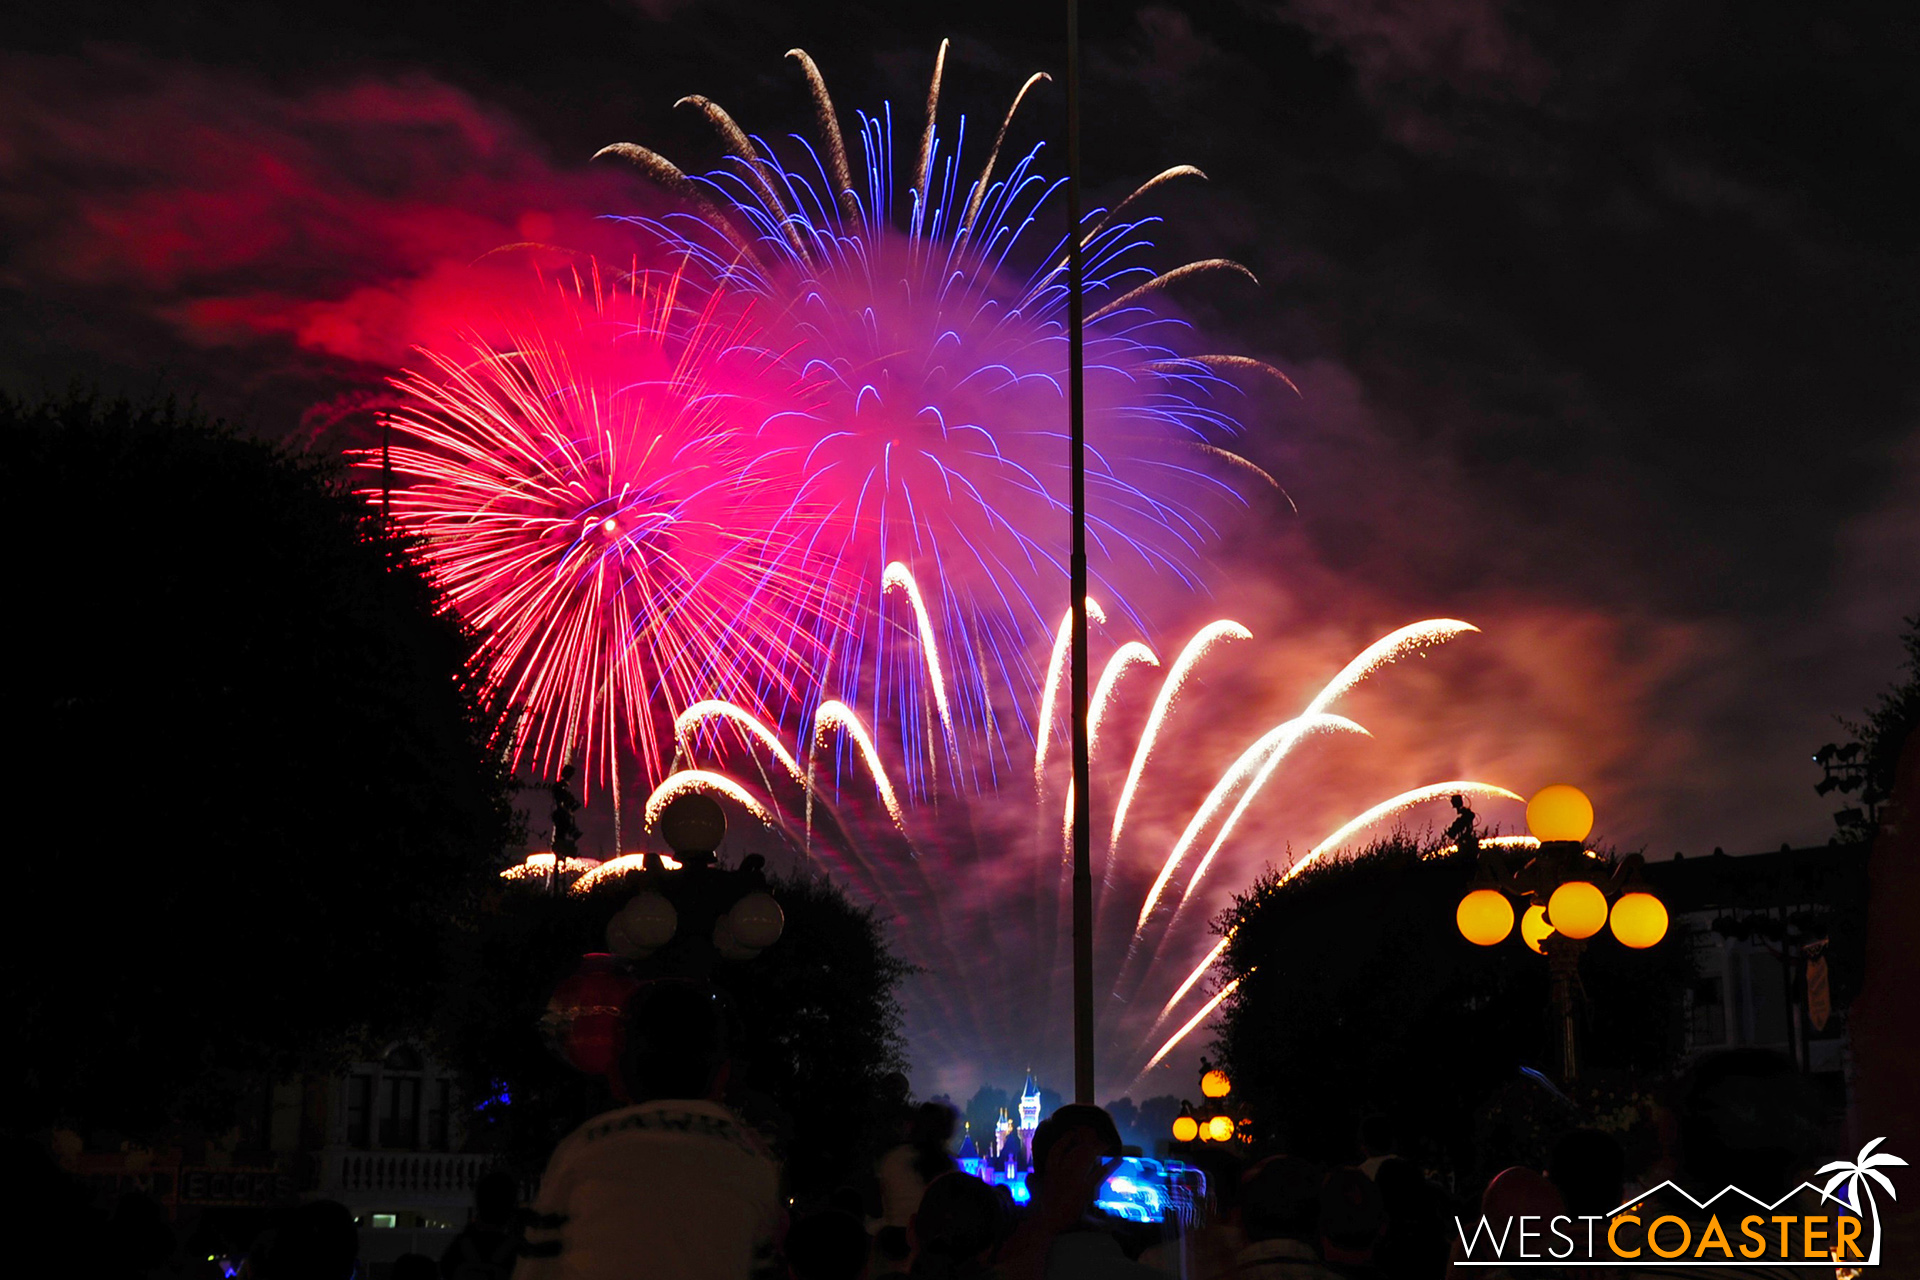 Disneyland will once again light up the skies with some patriotic pyrotechnics, as will many other places around town.